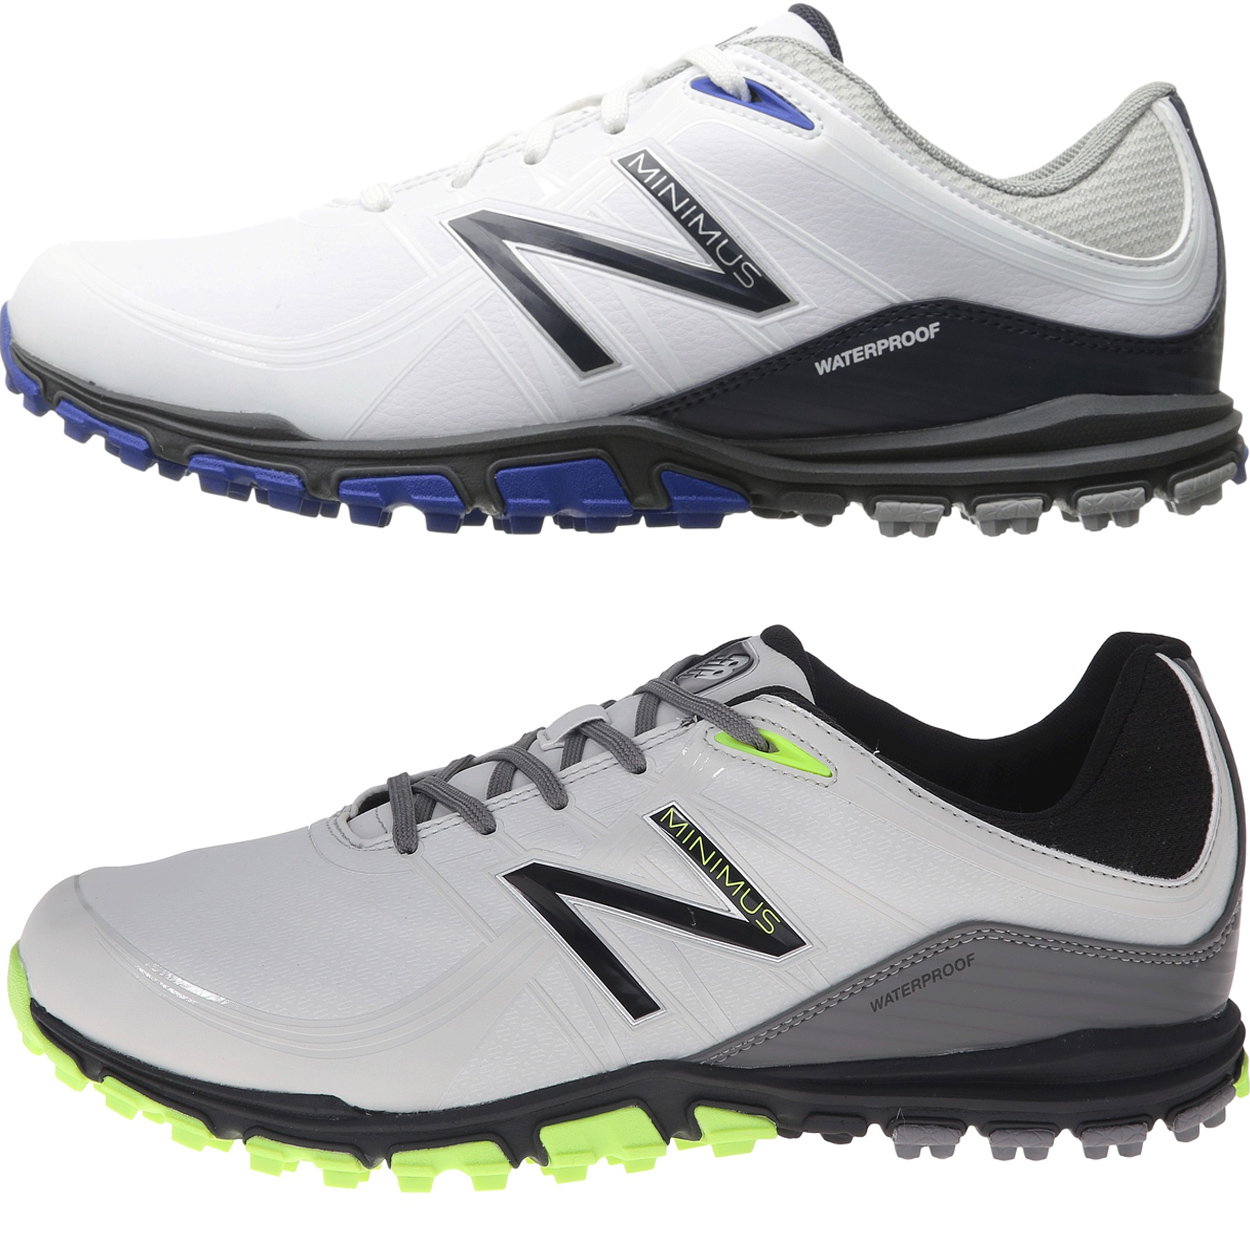 new balance nbg1005 s minimus spikeless golf shoe